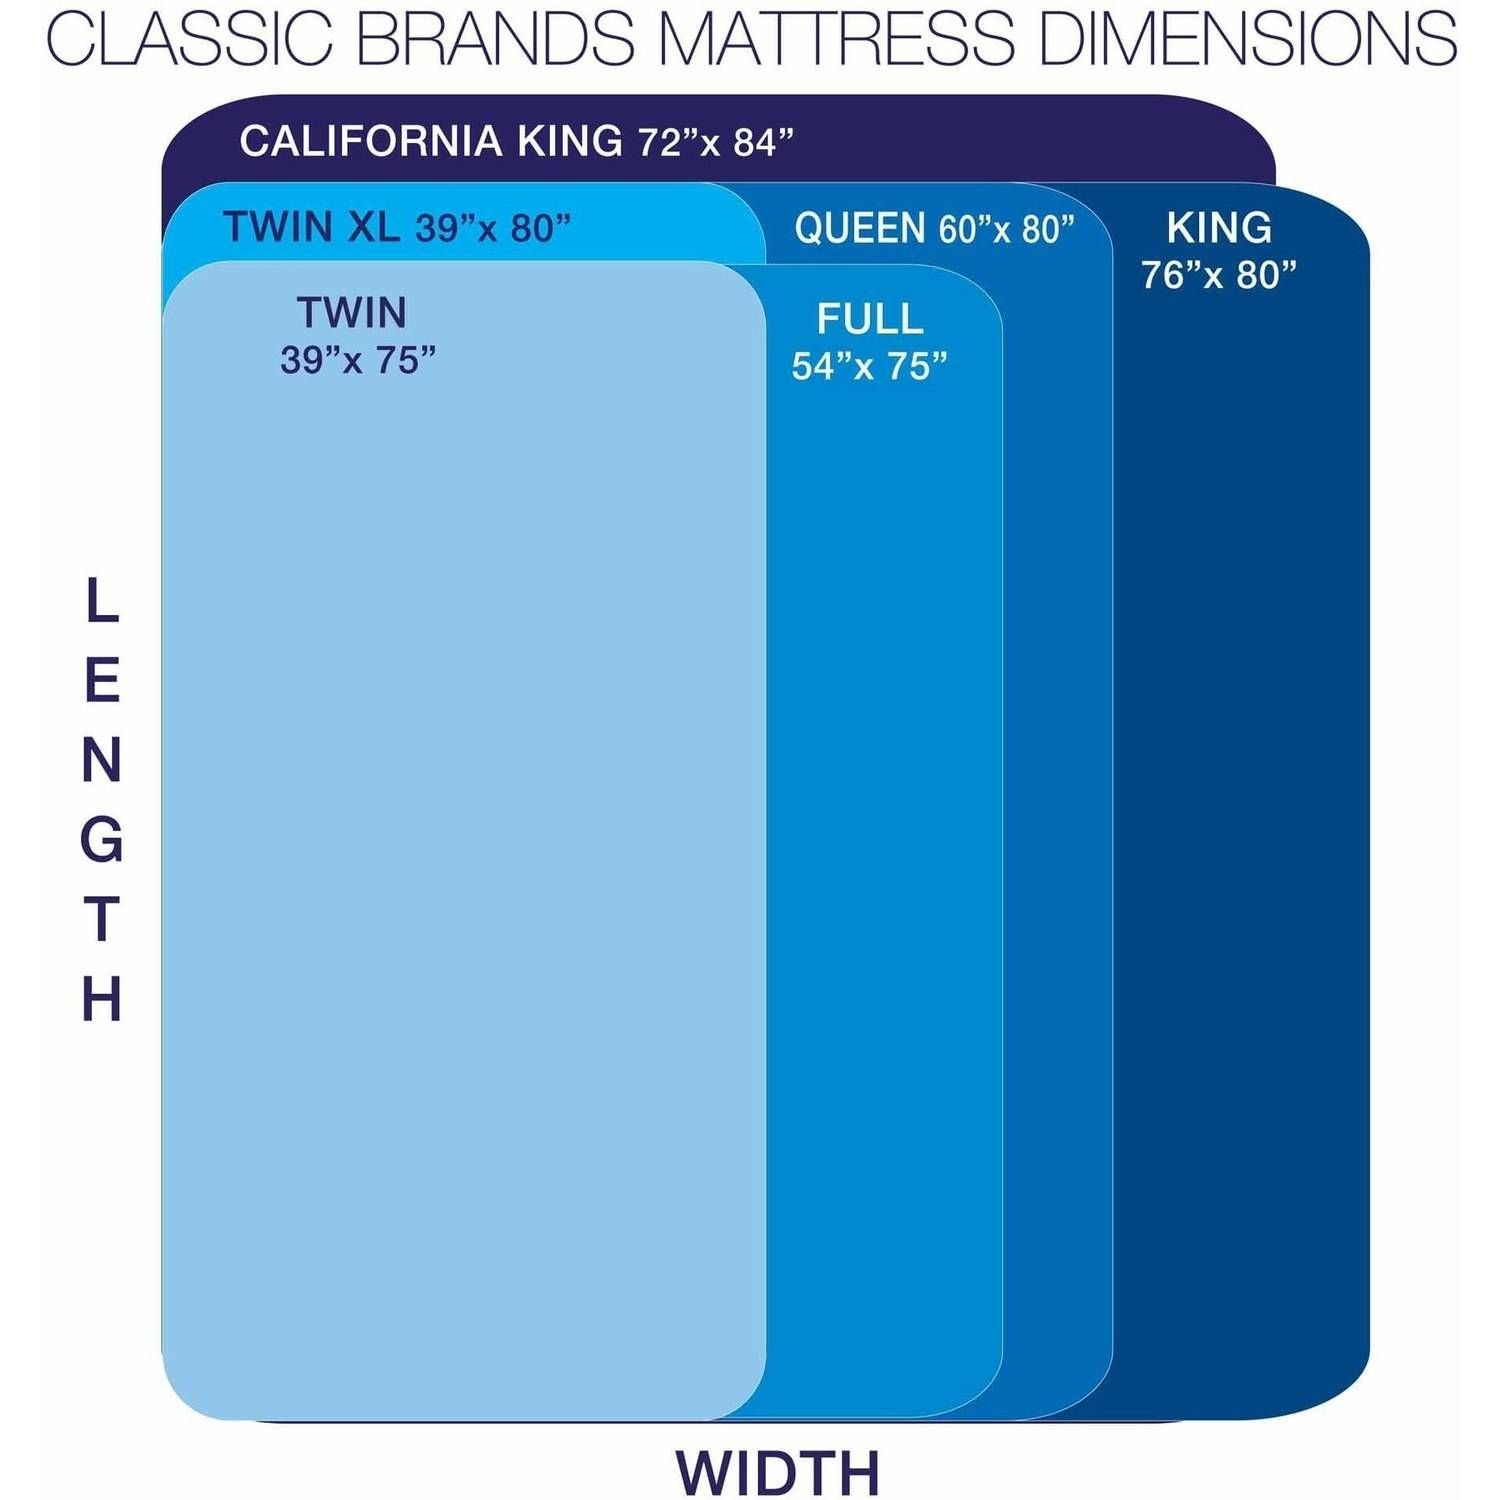 Mattress Sizes Dimensions Mattress Sizes Mattress Mattress